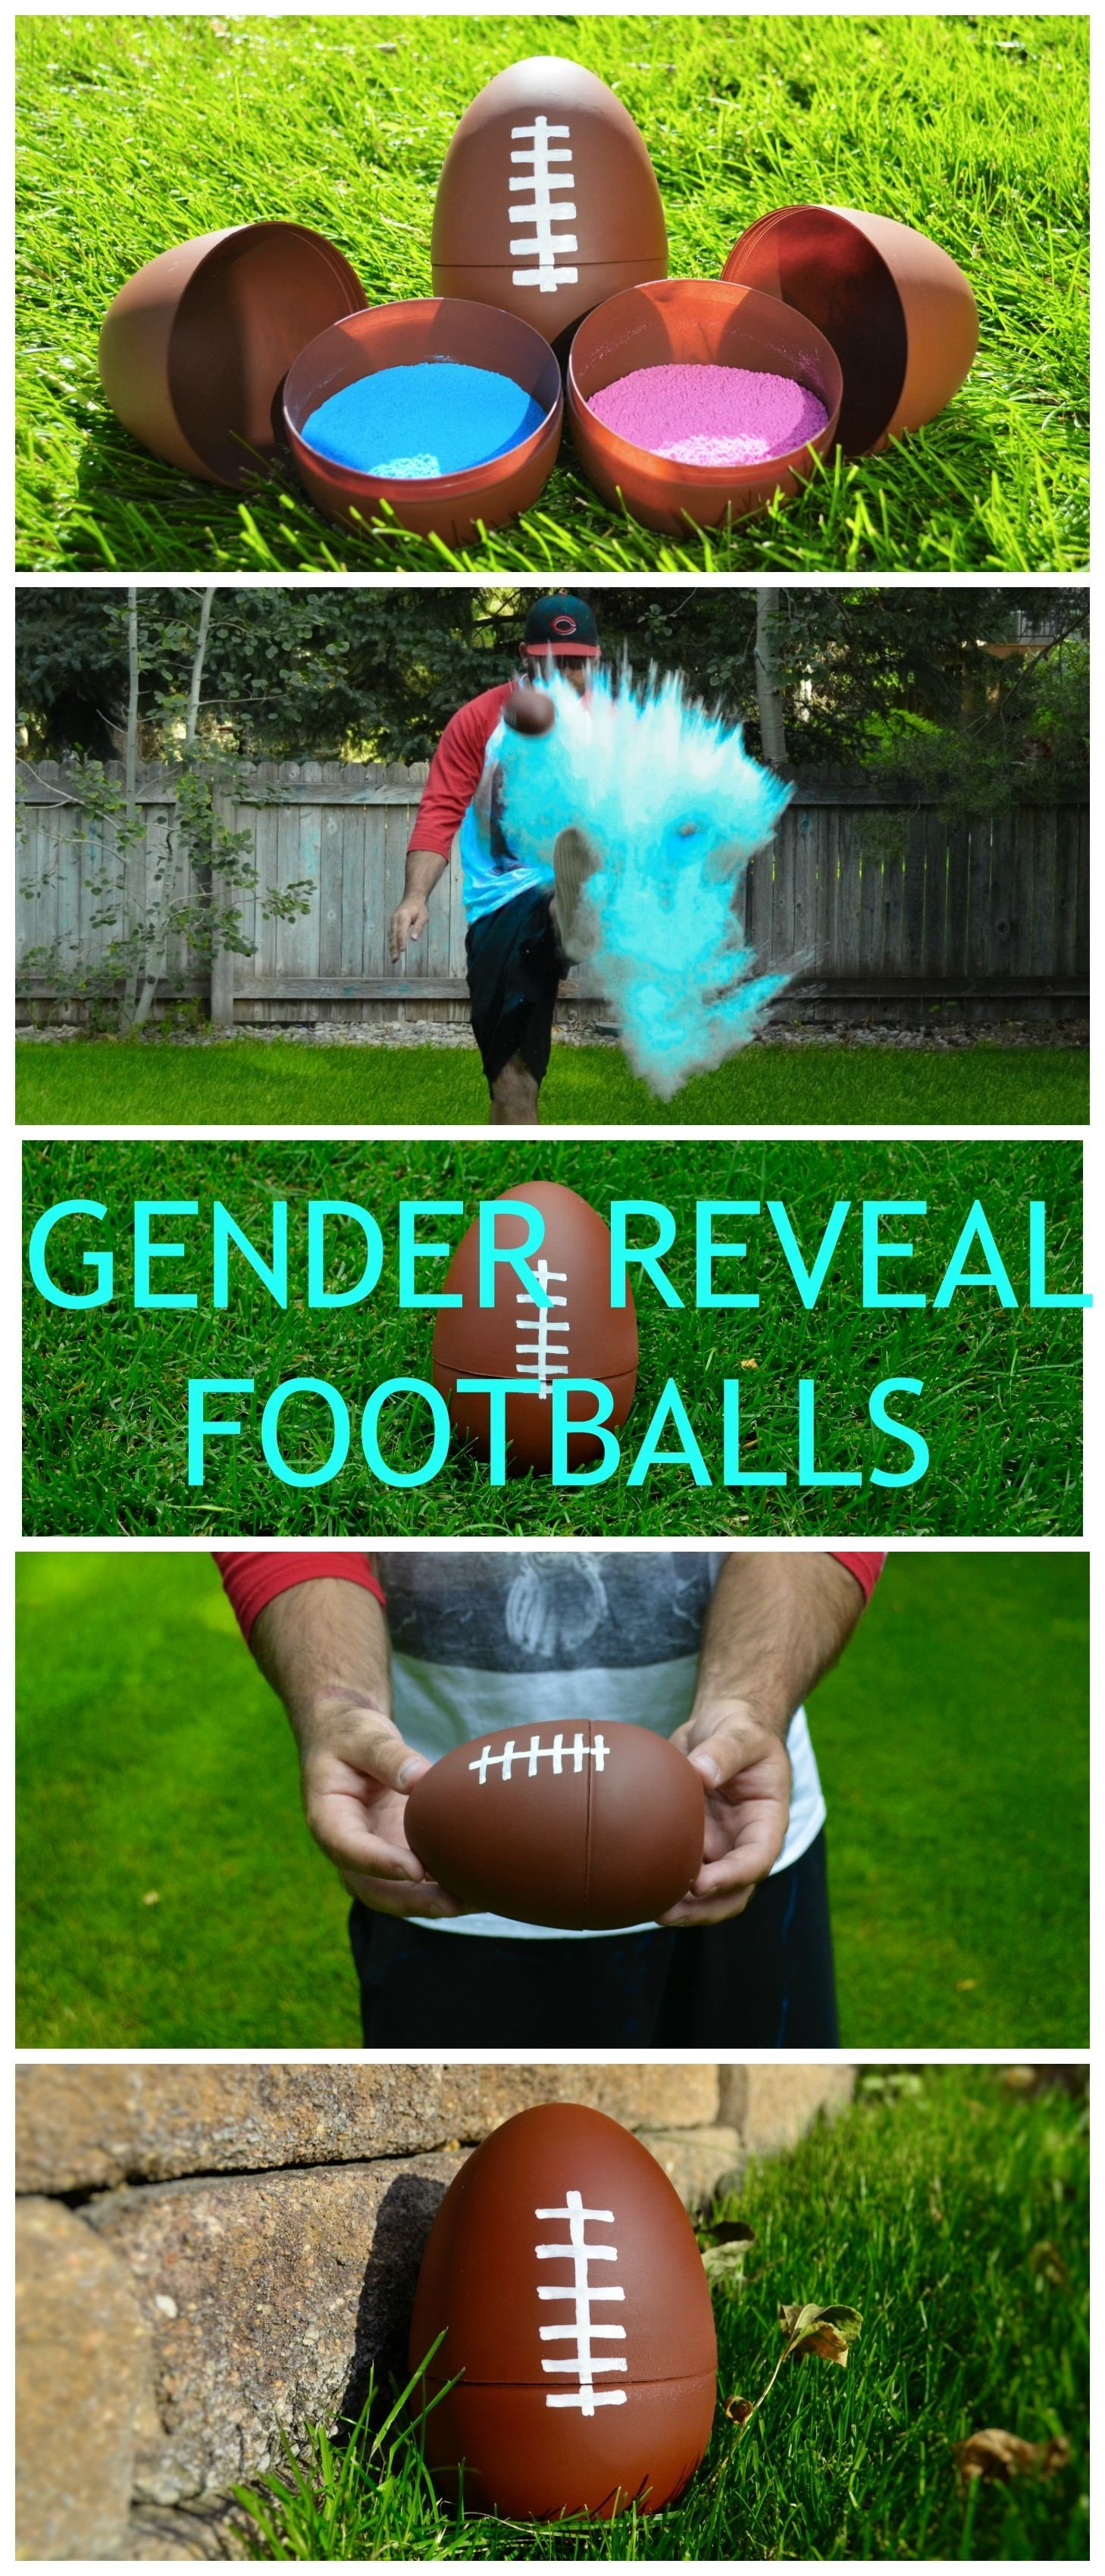 10 Cute Cute Ideas For Revealing Baby Gender football gender reveal balls with new bright colors reveal parties 1